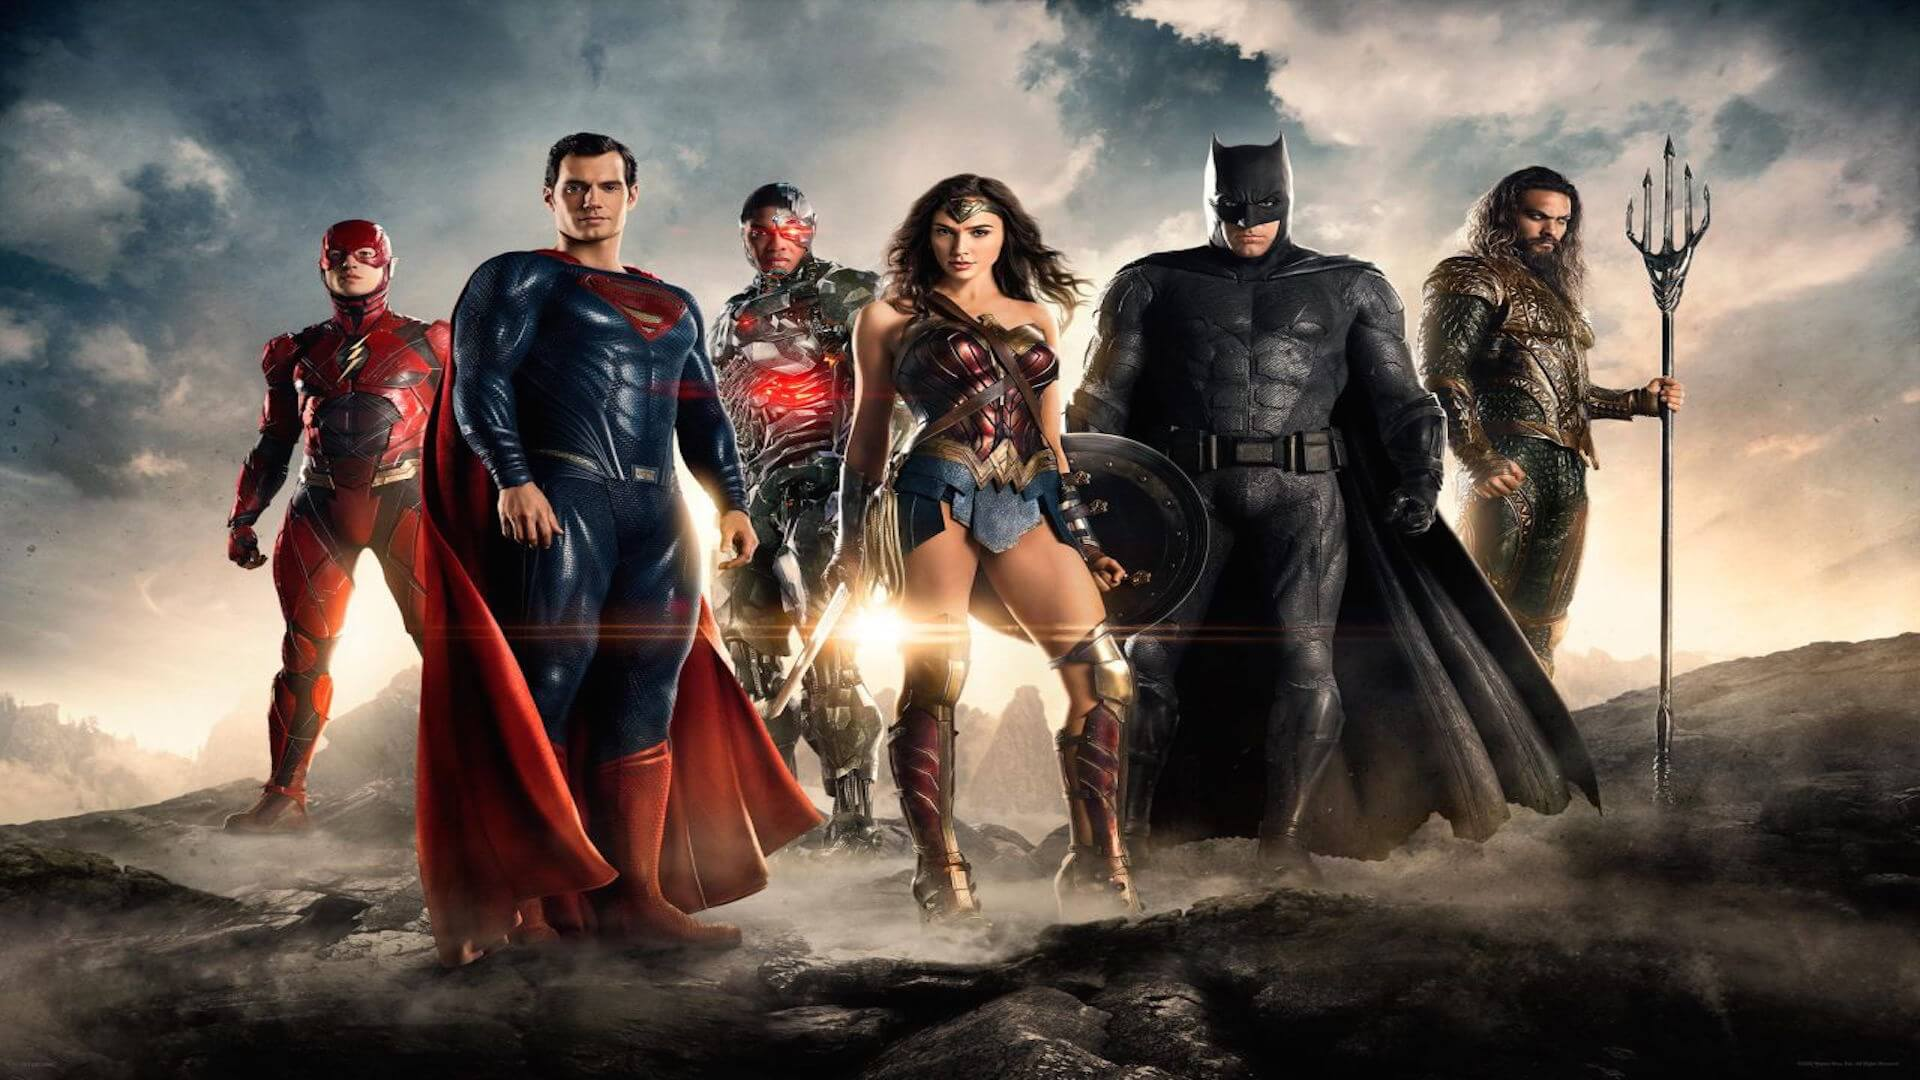 Justice League Trailer Released at SDCC